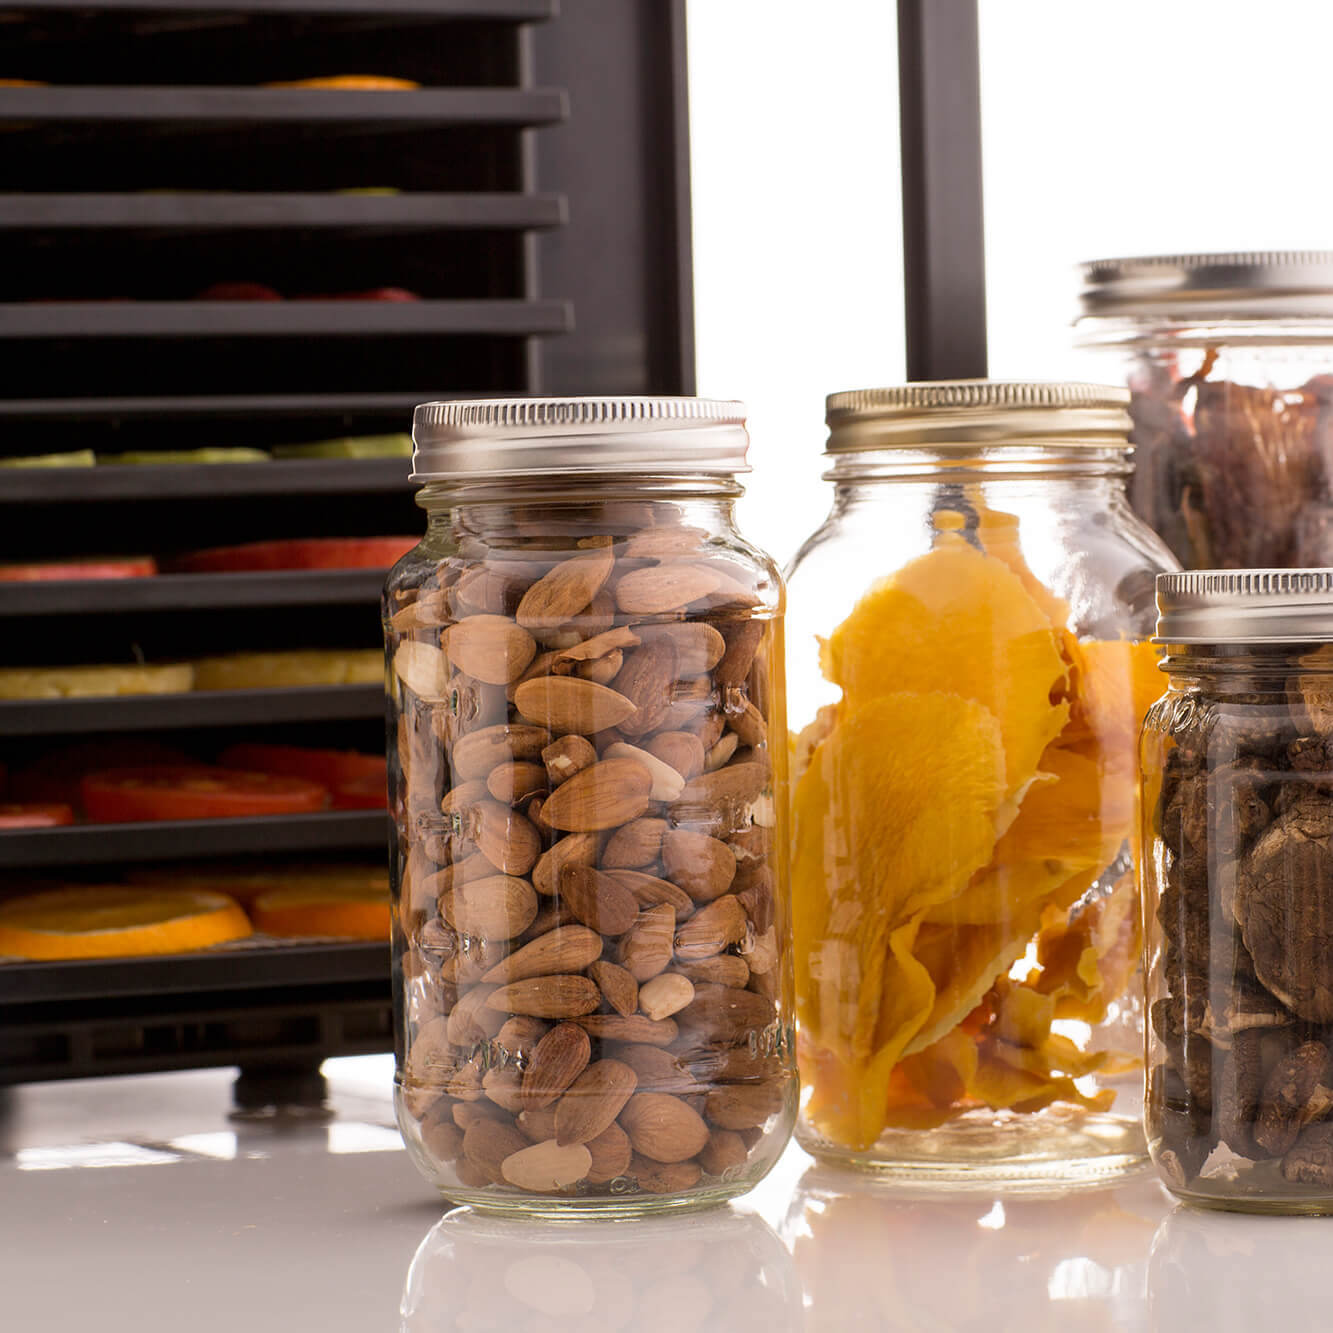 Glass jars filled with dried produce placed in front of an Excalibur RES10 dehydrator.